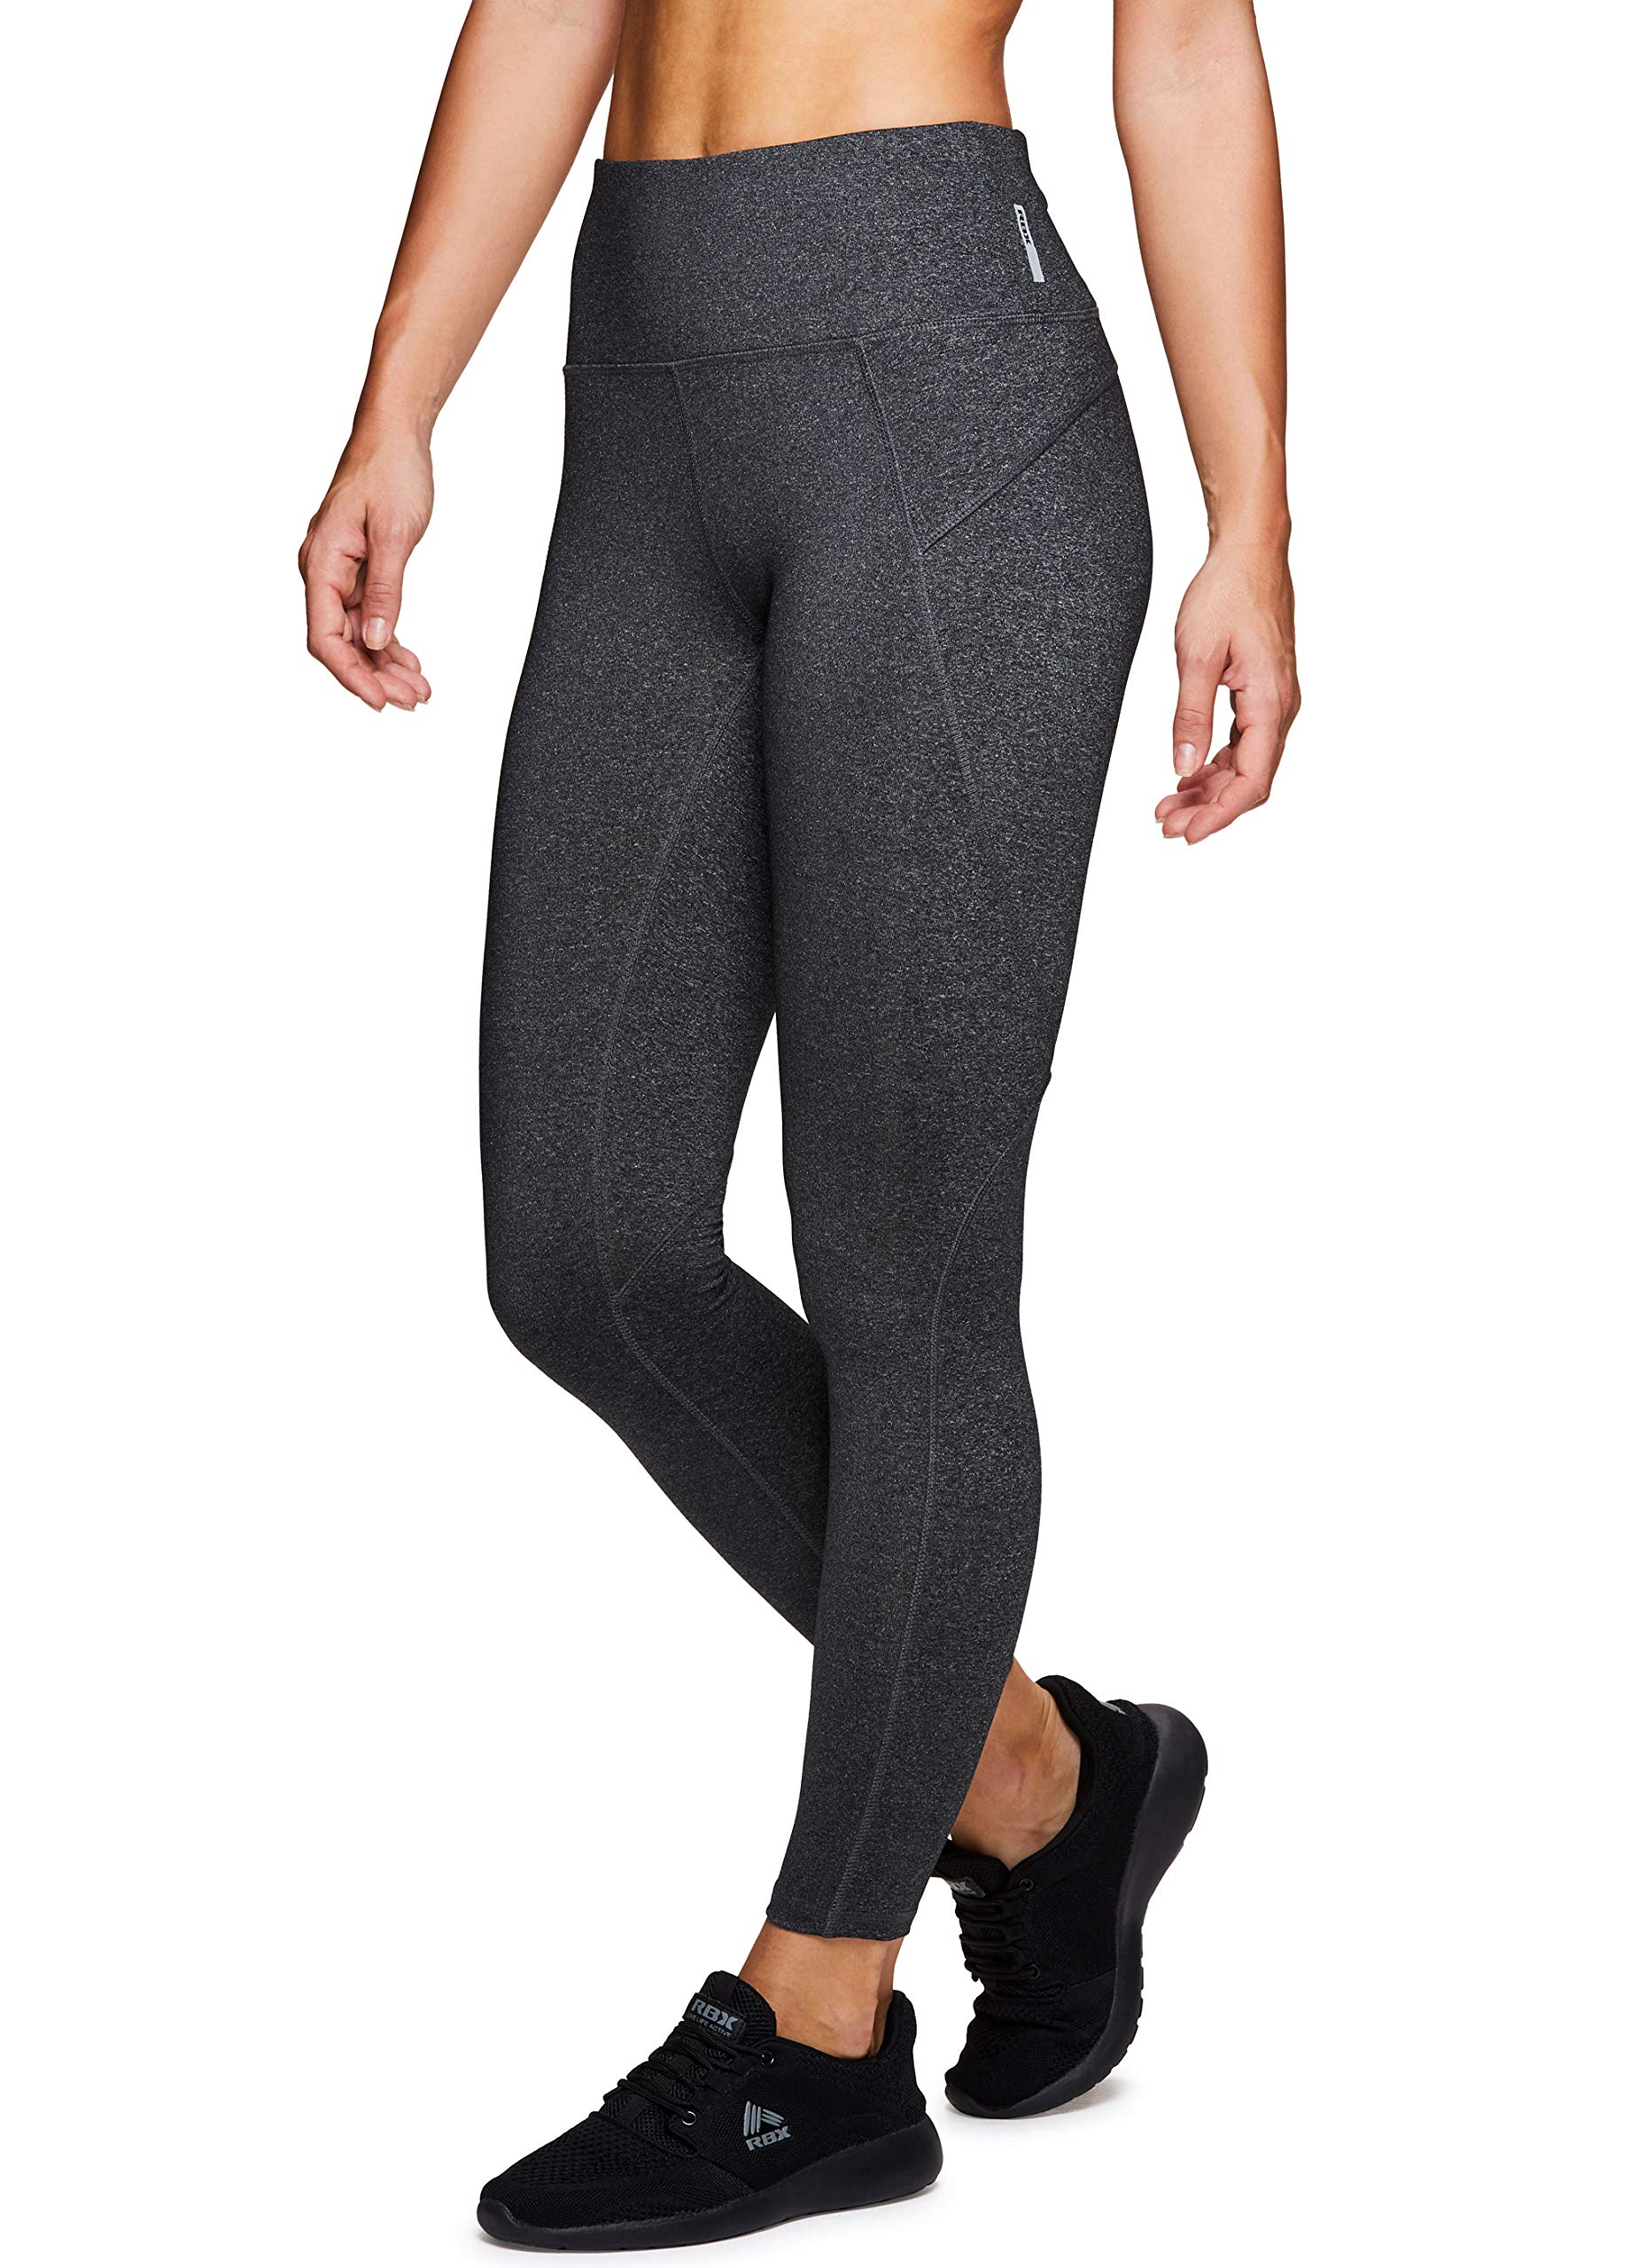 RBX Active Women's Athletic Yoga Workout Leggings Grey M by RBX